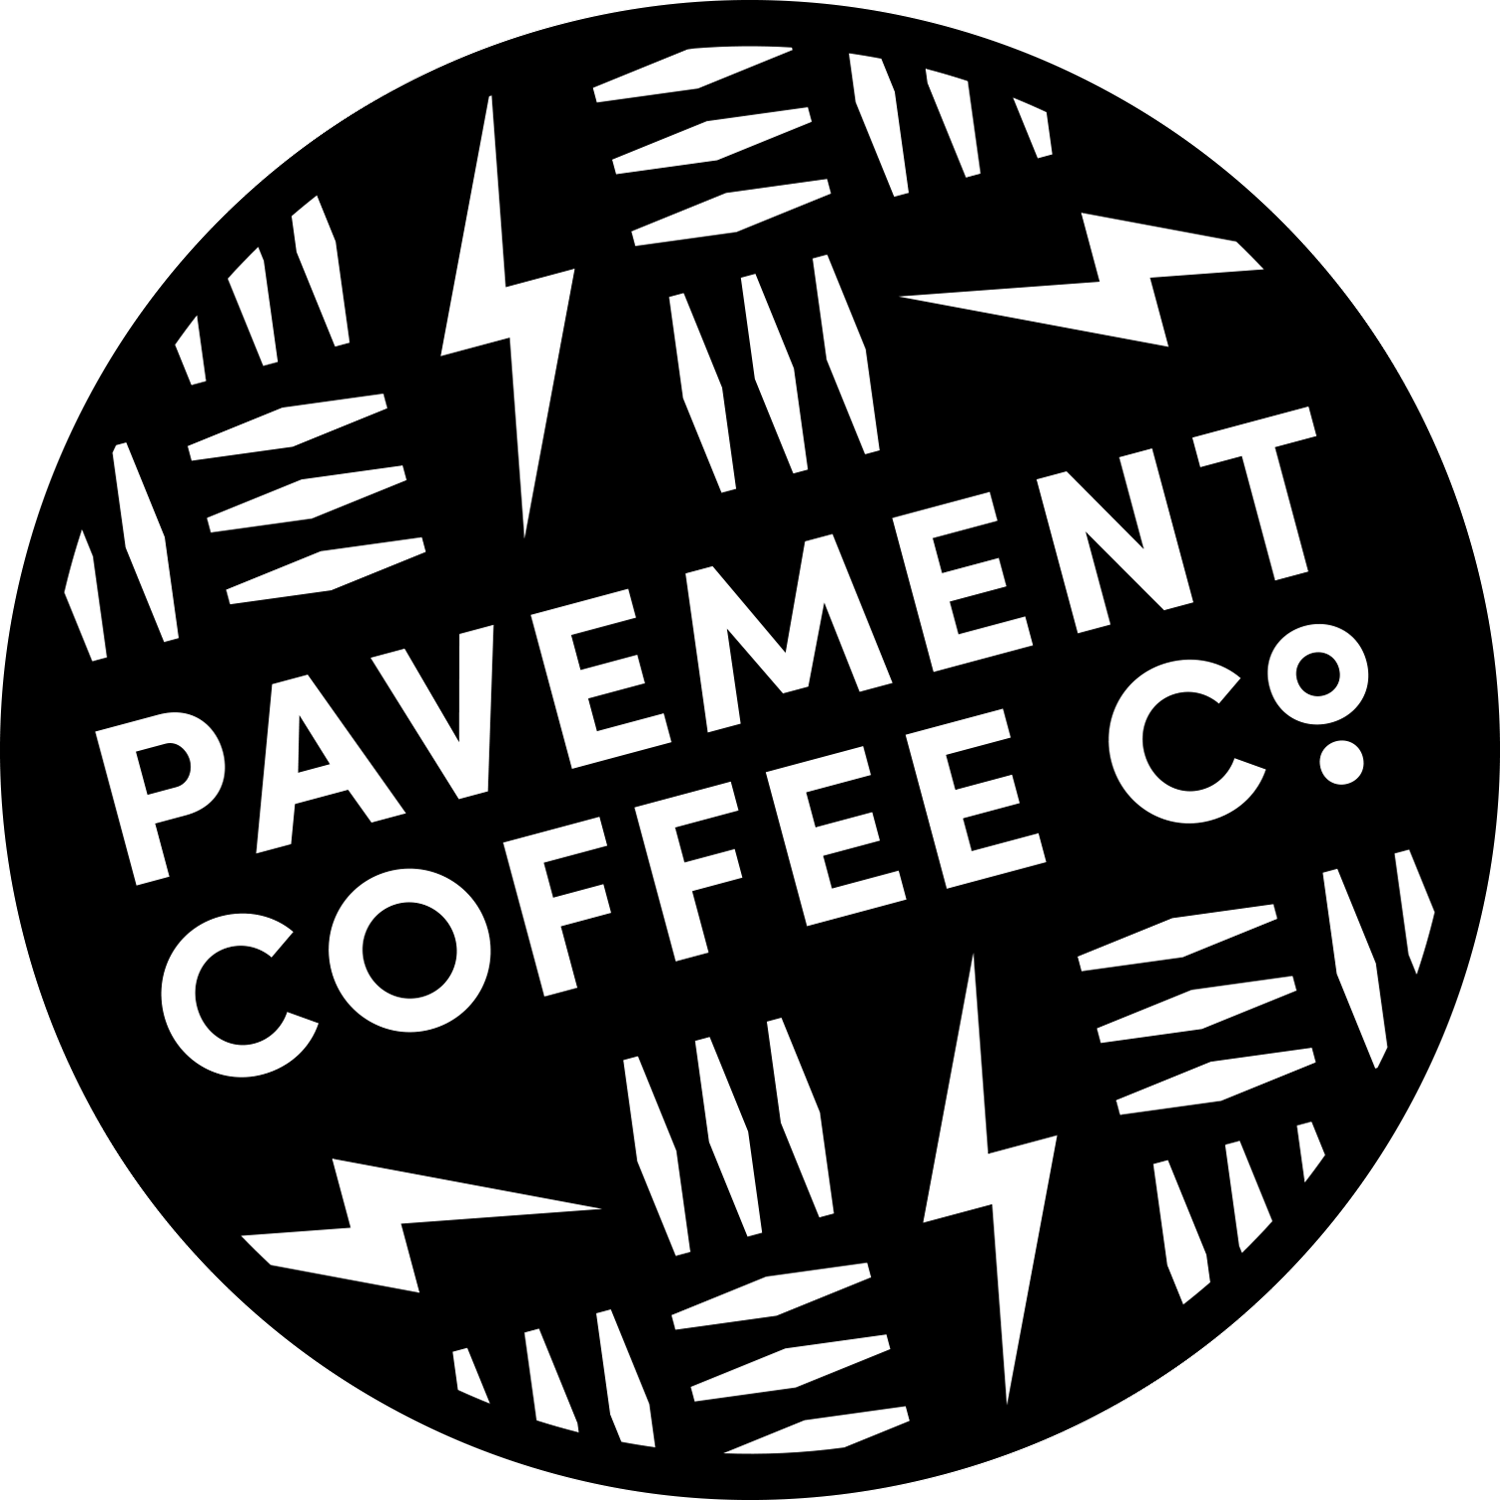 Pavement Coffee Co. | Coffee van hire in Banbury Oxfordshire